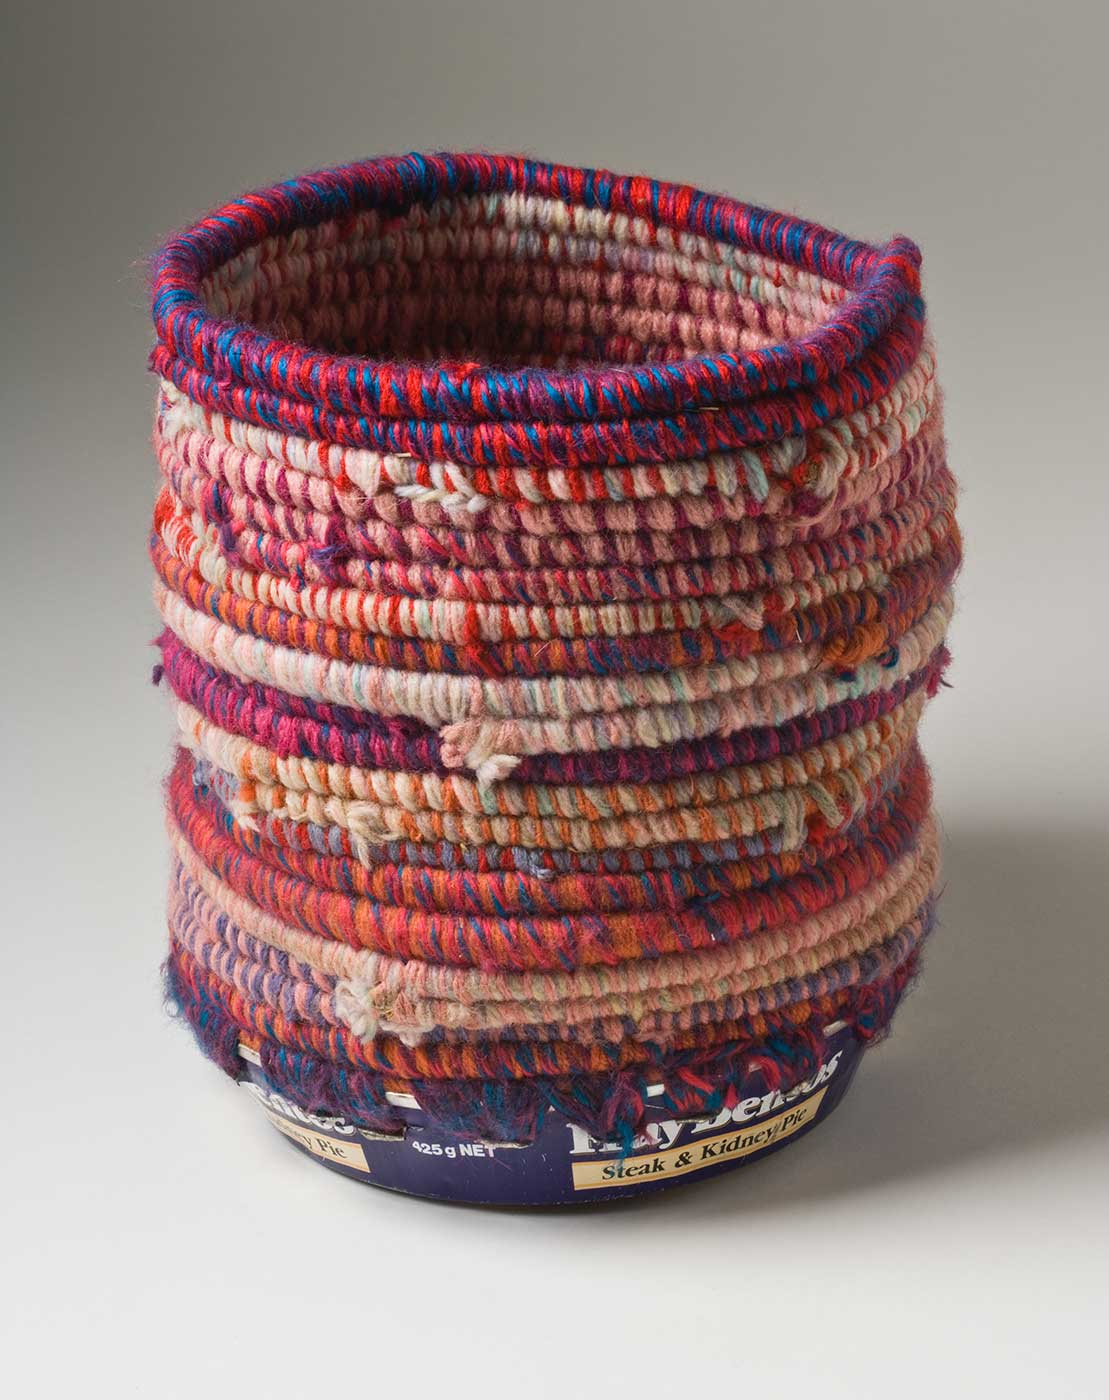 A cylindrical coiled multicoloured yarn and plant fibre basket with a metal base. The coiled yarn is in colours of blue, orange, red and purple with a dominant colour of pink. The base of the basket is a blue and white coloured metal tin with burn marks to the bottom which includes the text 'Fray Bentos / Steak and Kidney Pie'. Yarn is used to attach the base to the top section through holes that have been punched in the tin.